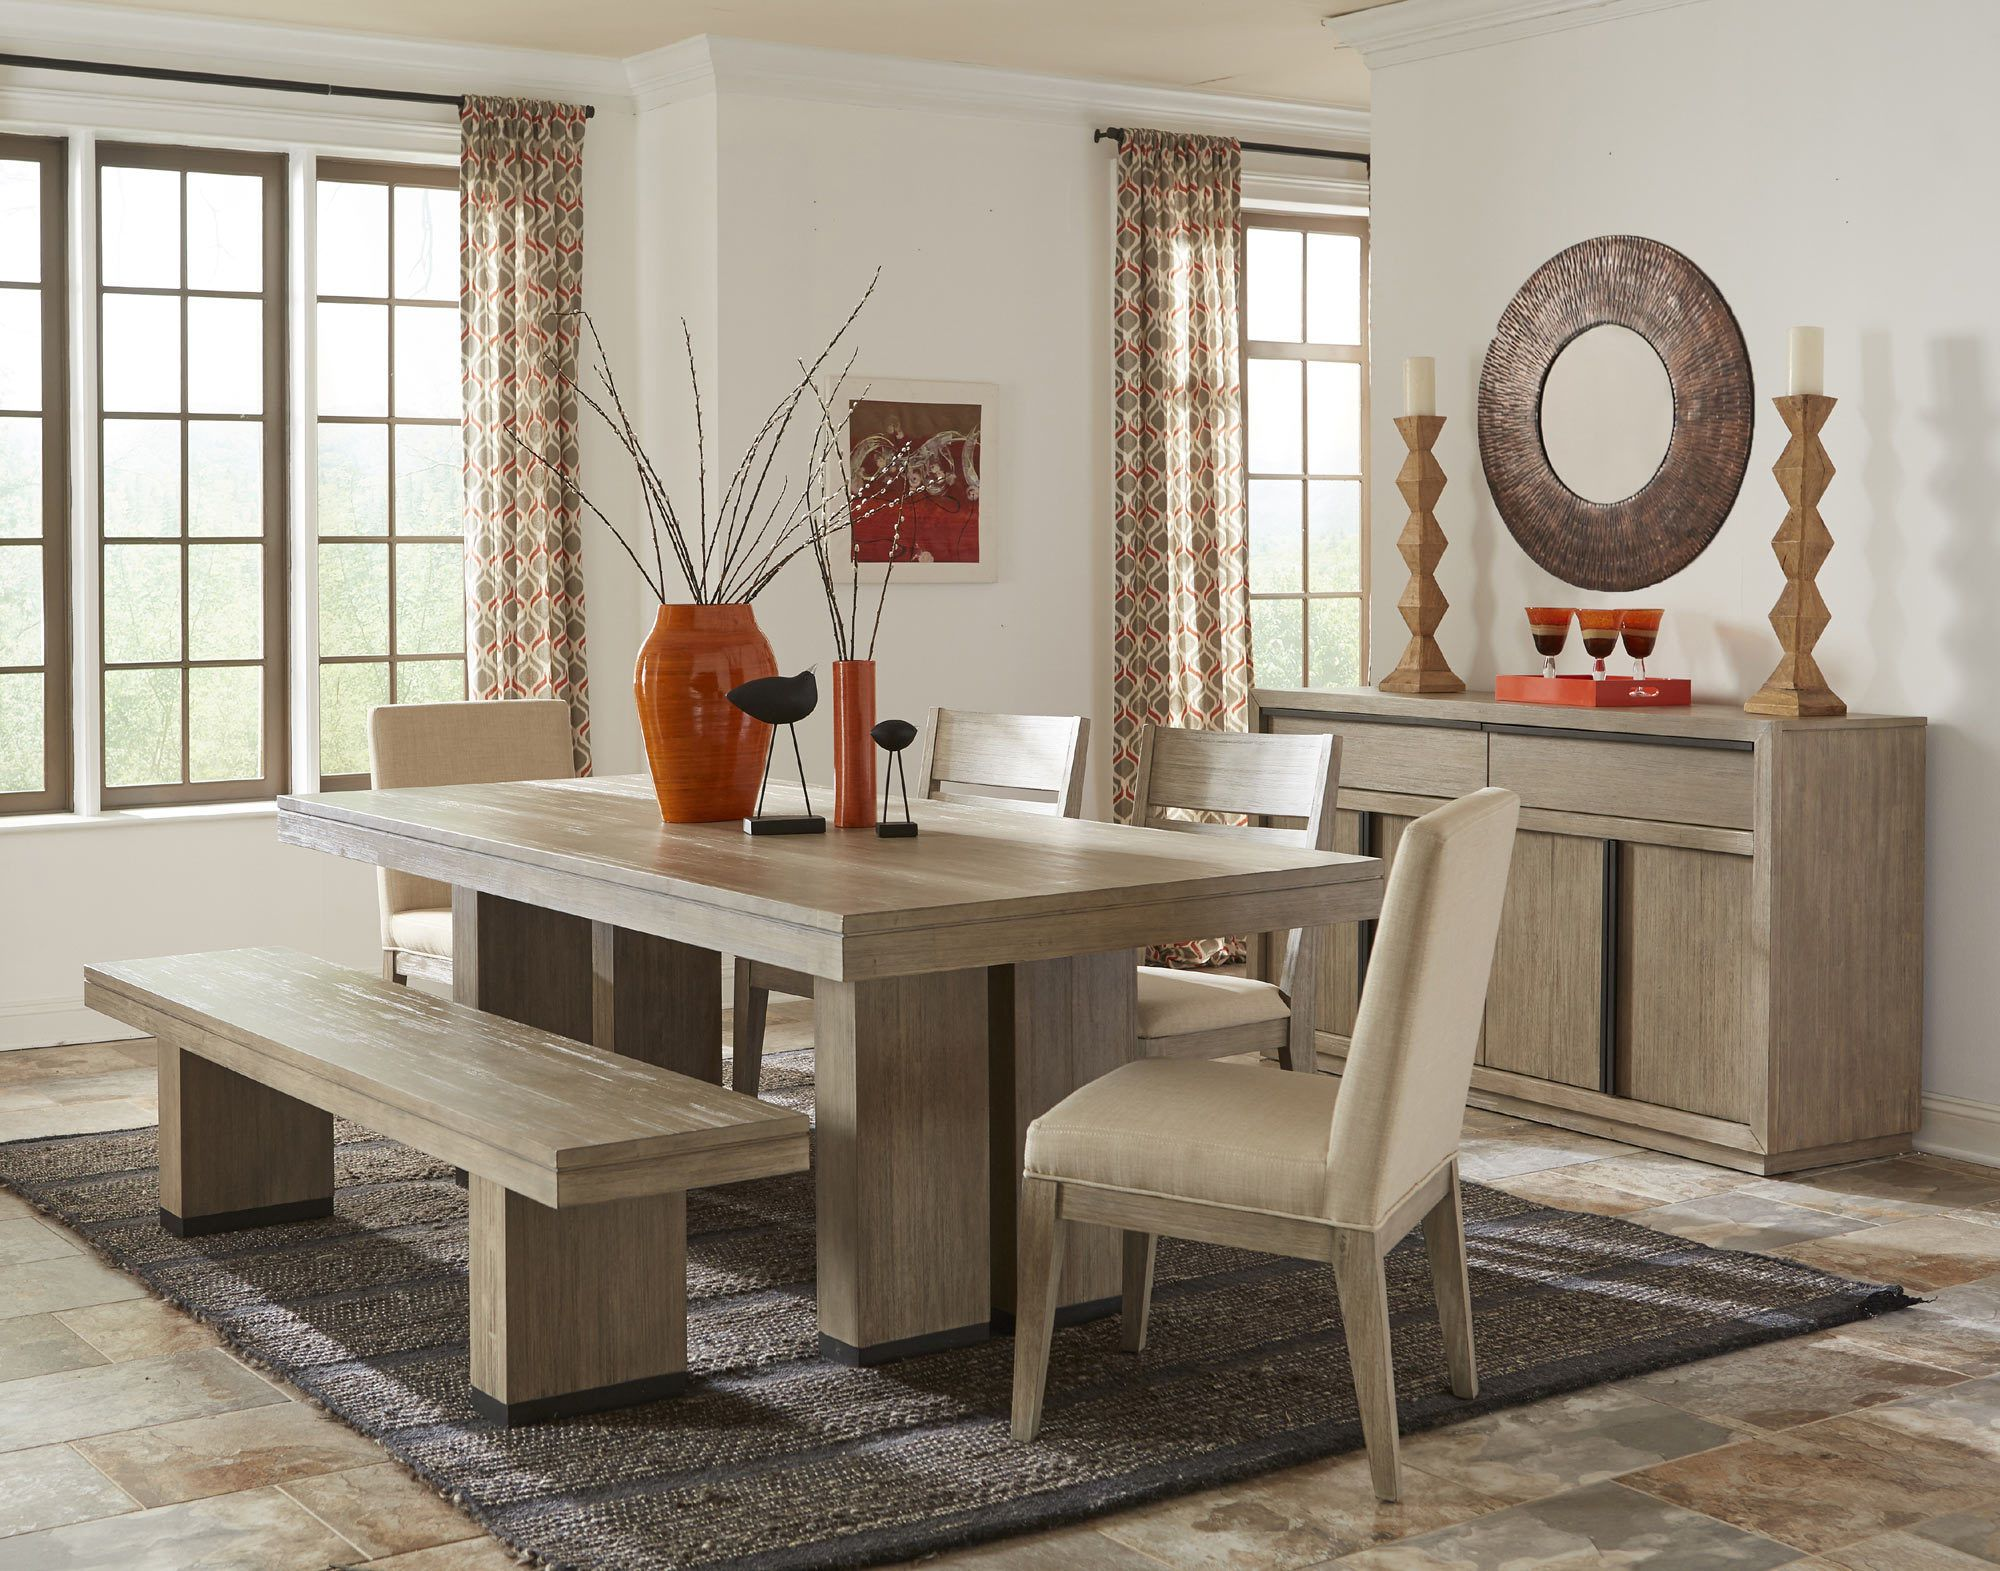 Larkspur Trestle Table Dining Room Set | Cresent Furniture | Home Gallery  Stores